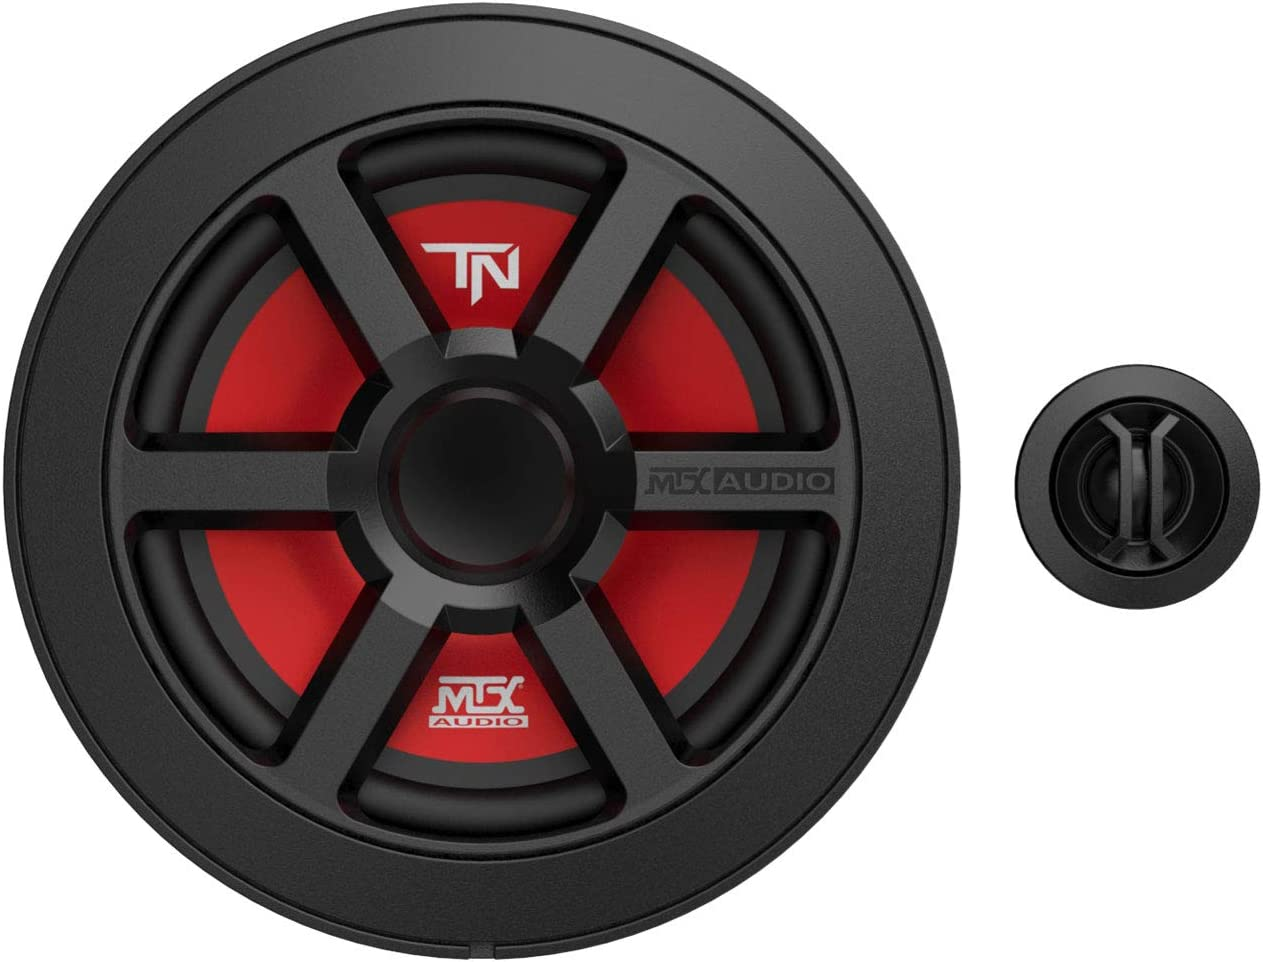 MTX Terminator 6.5 Inch Woofer Cone Component Speaker Pair with 45 Watt RMS